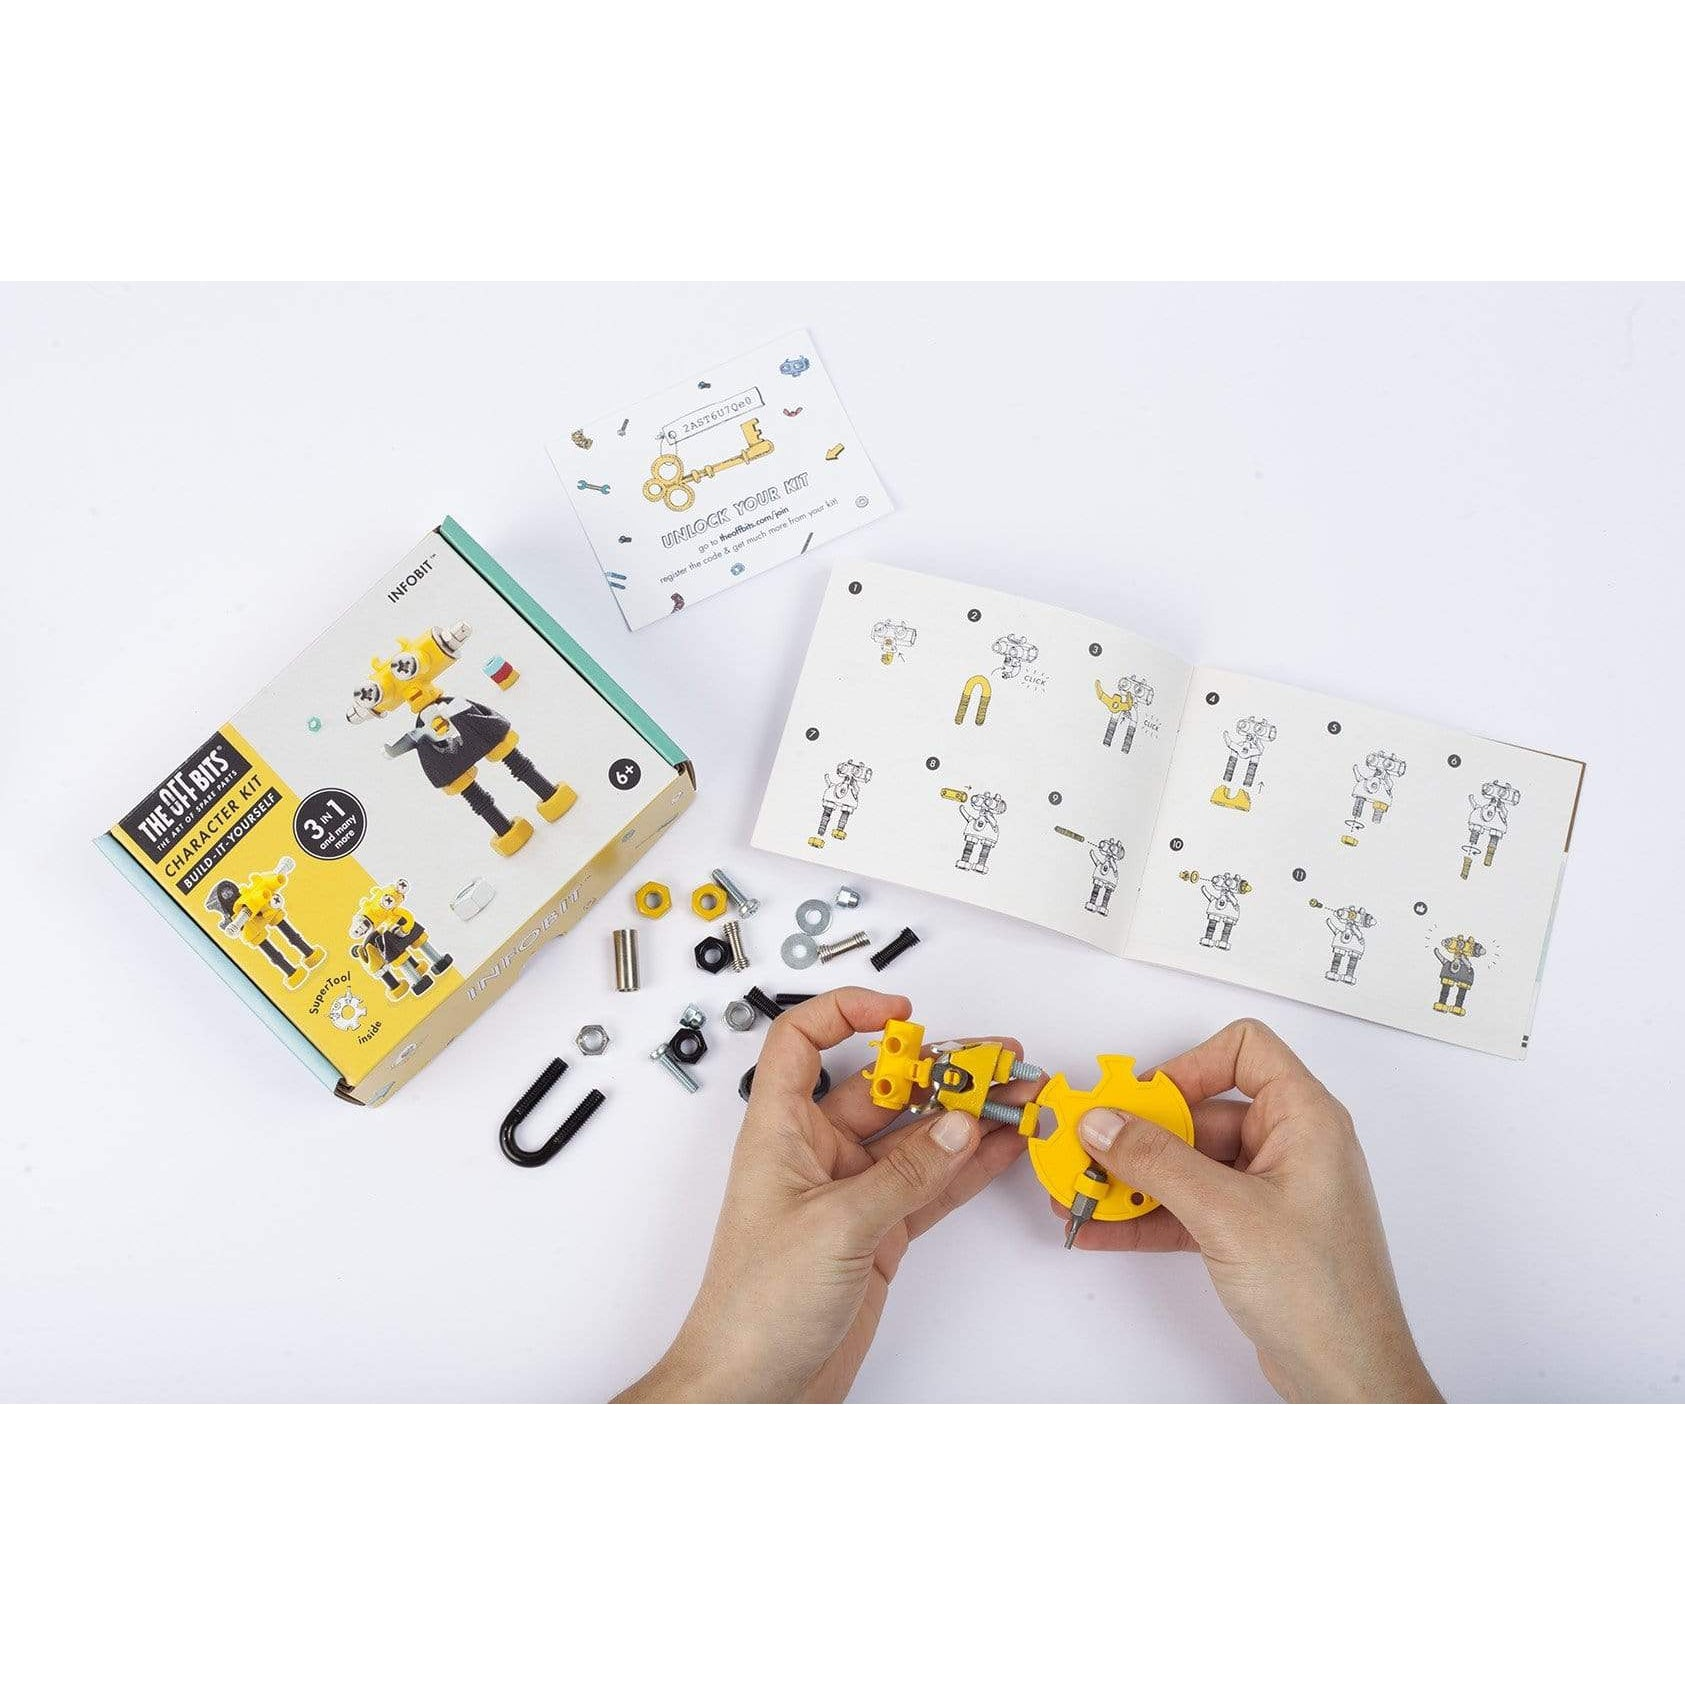 YELLOW 3-in-1 Robot Kit from The OFFBITS